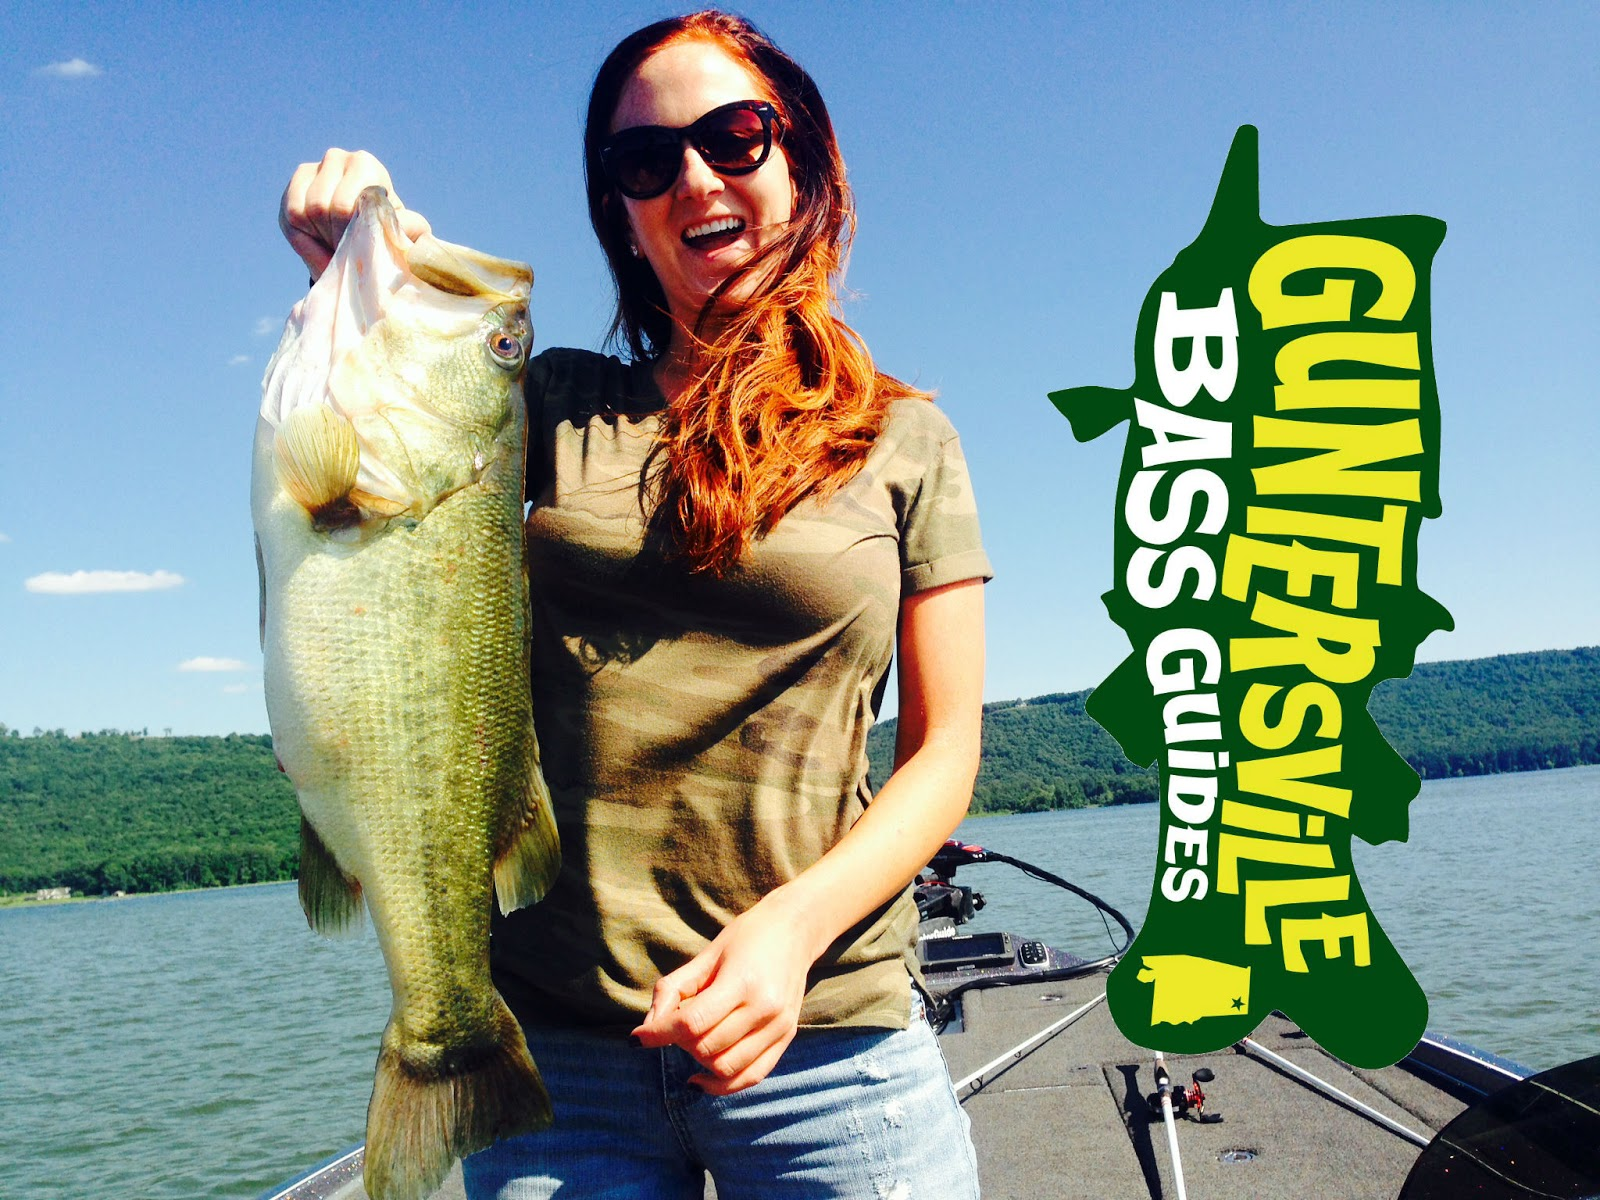 Lake guntersville fishing report for Seven b s fishing report